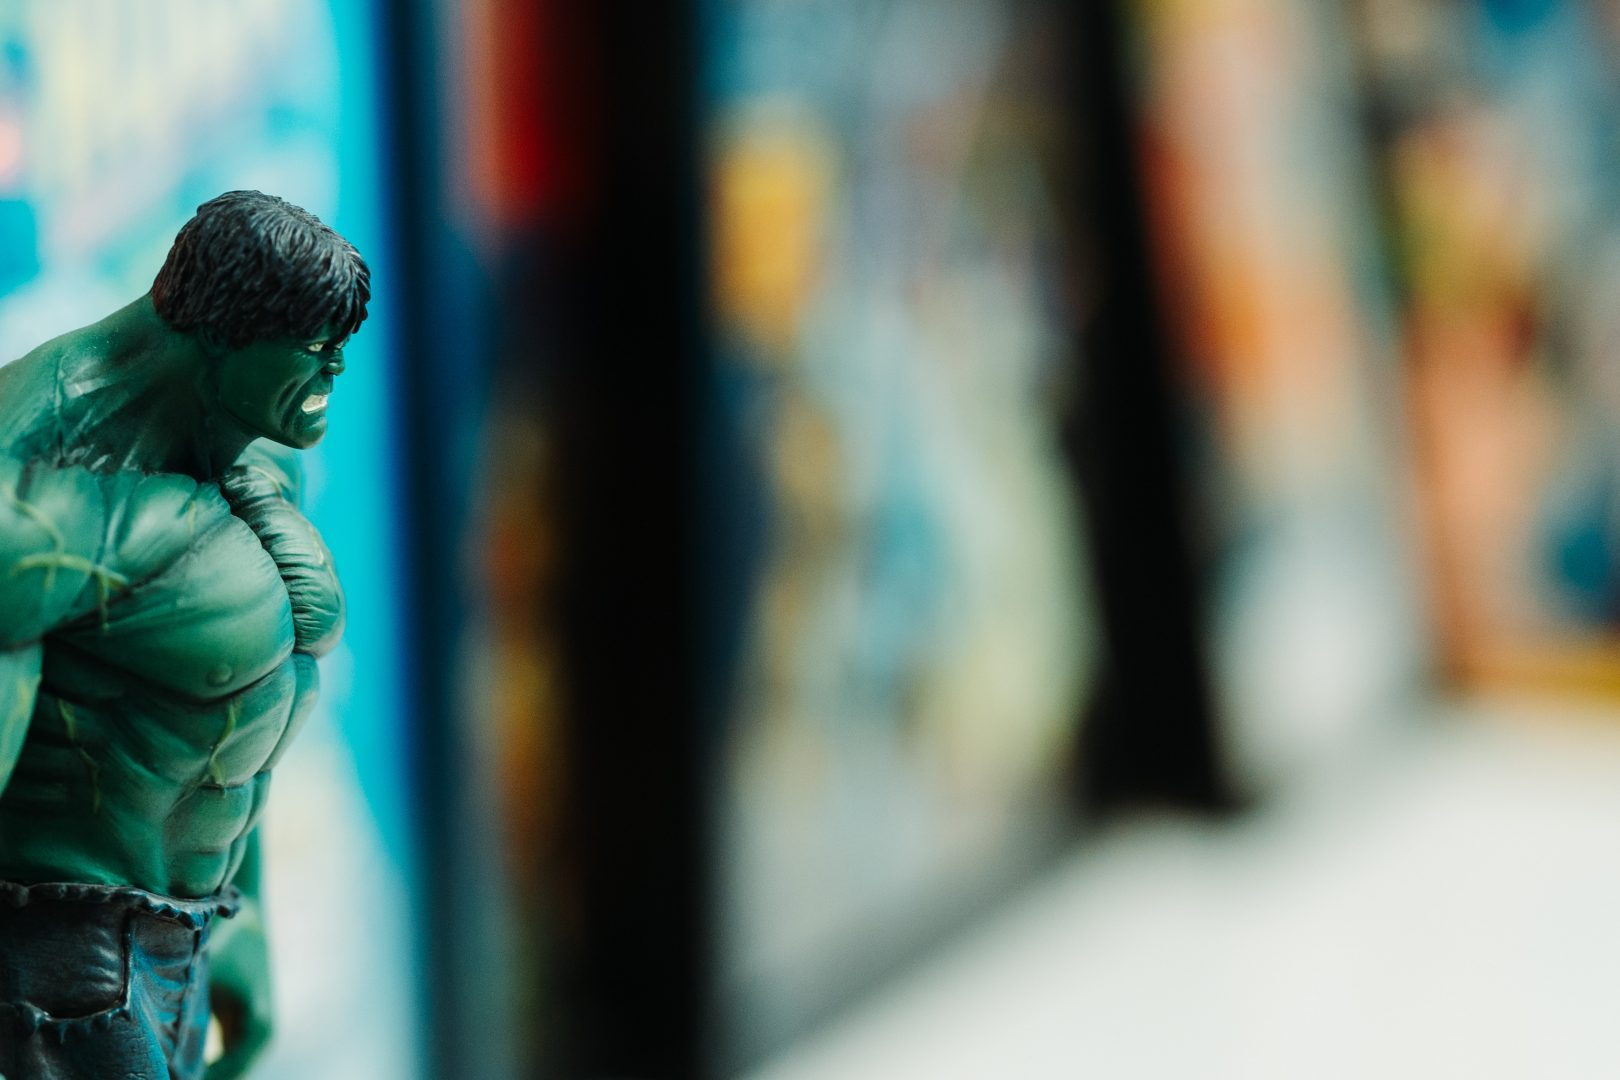 selective focus photography of The Incredible Hulk figure